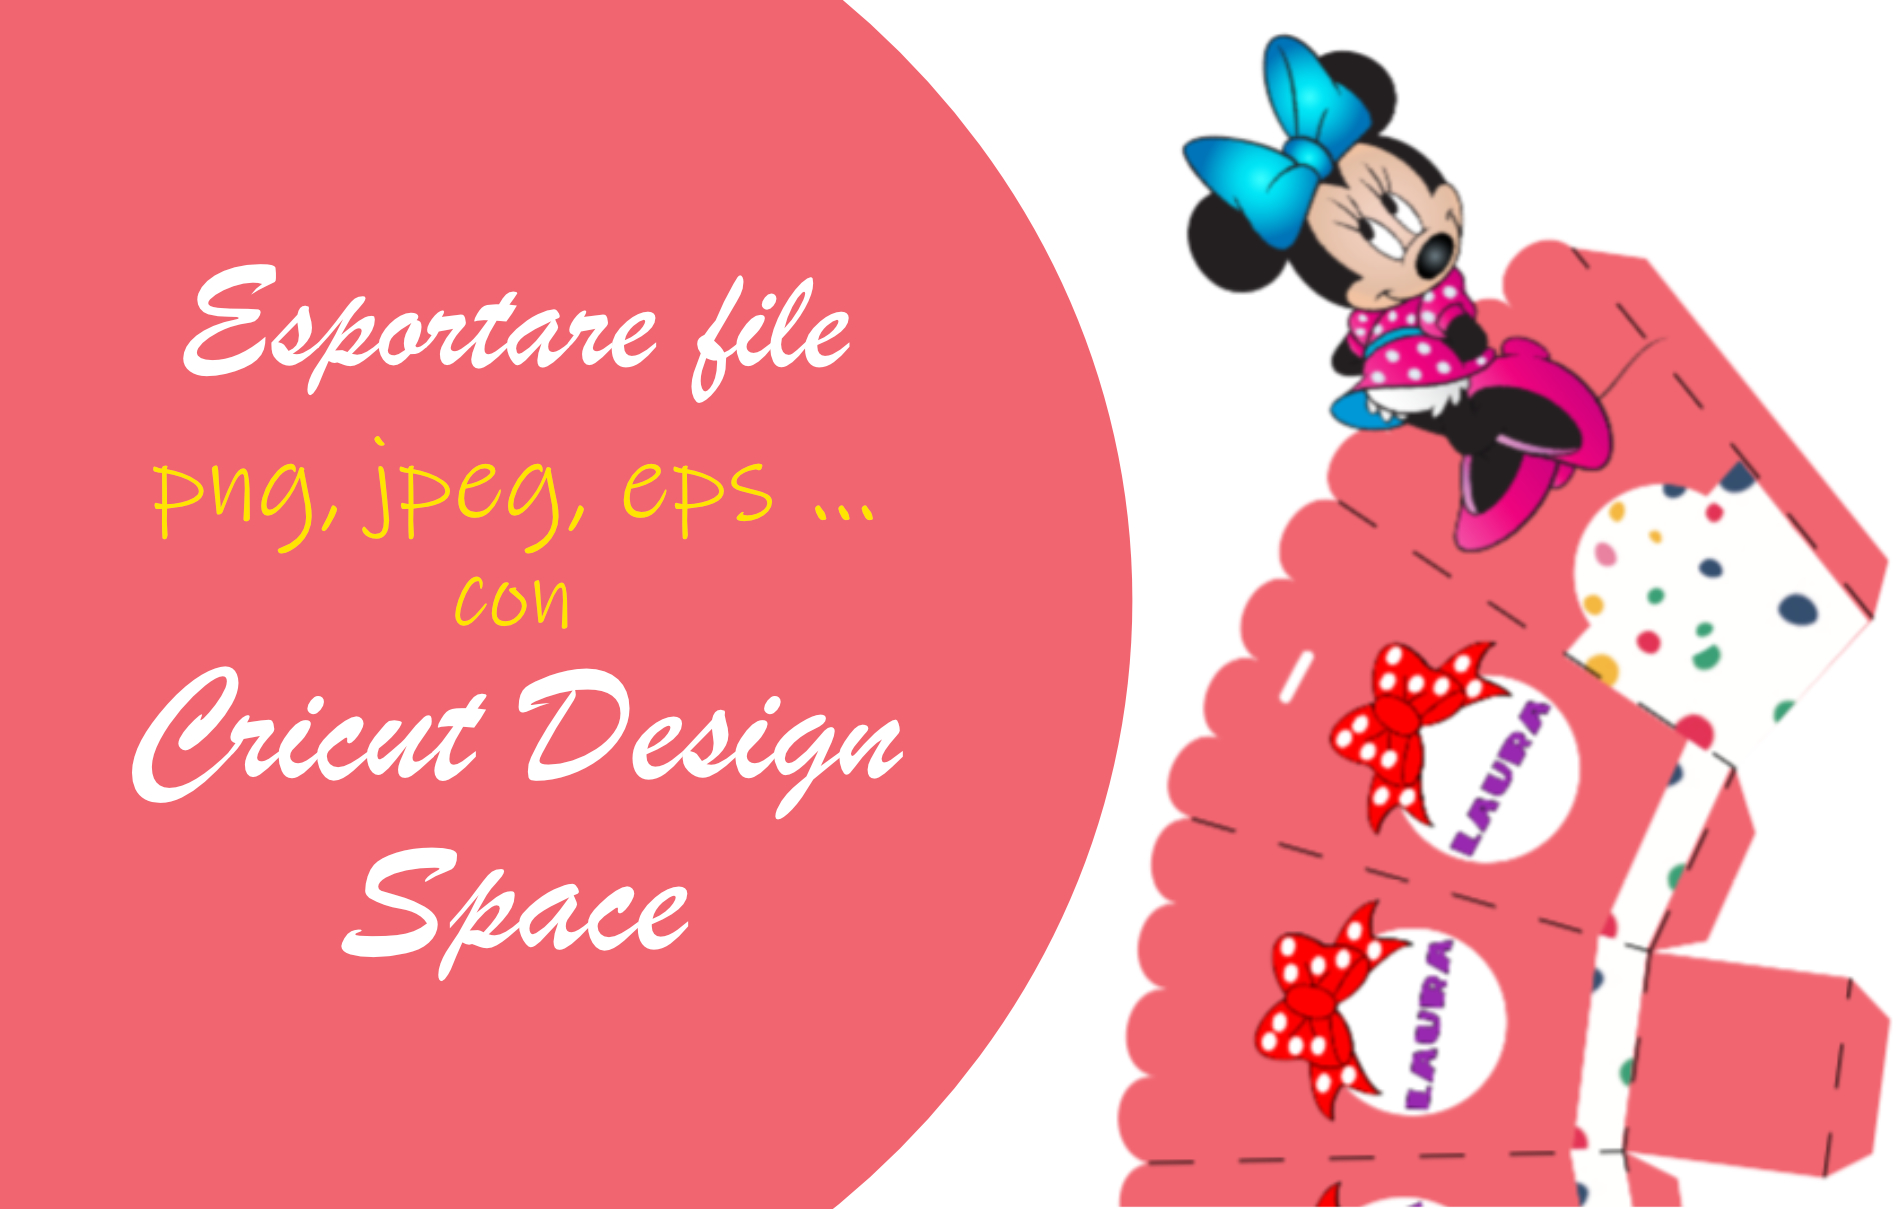 Esportare file con Cricut Design Space